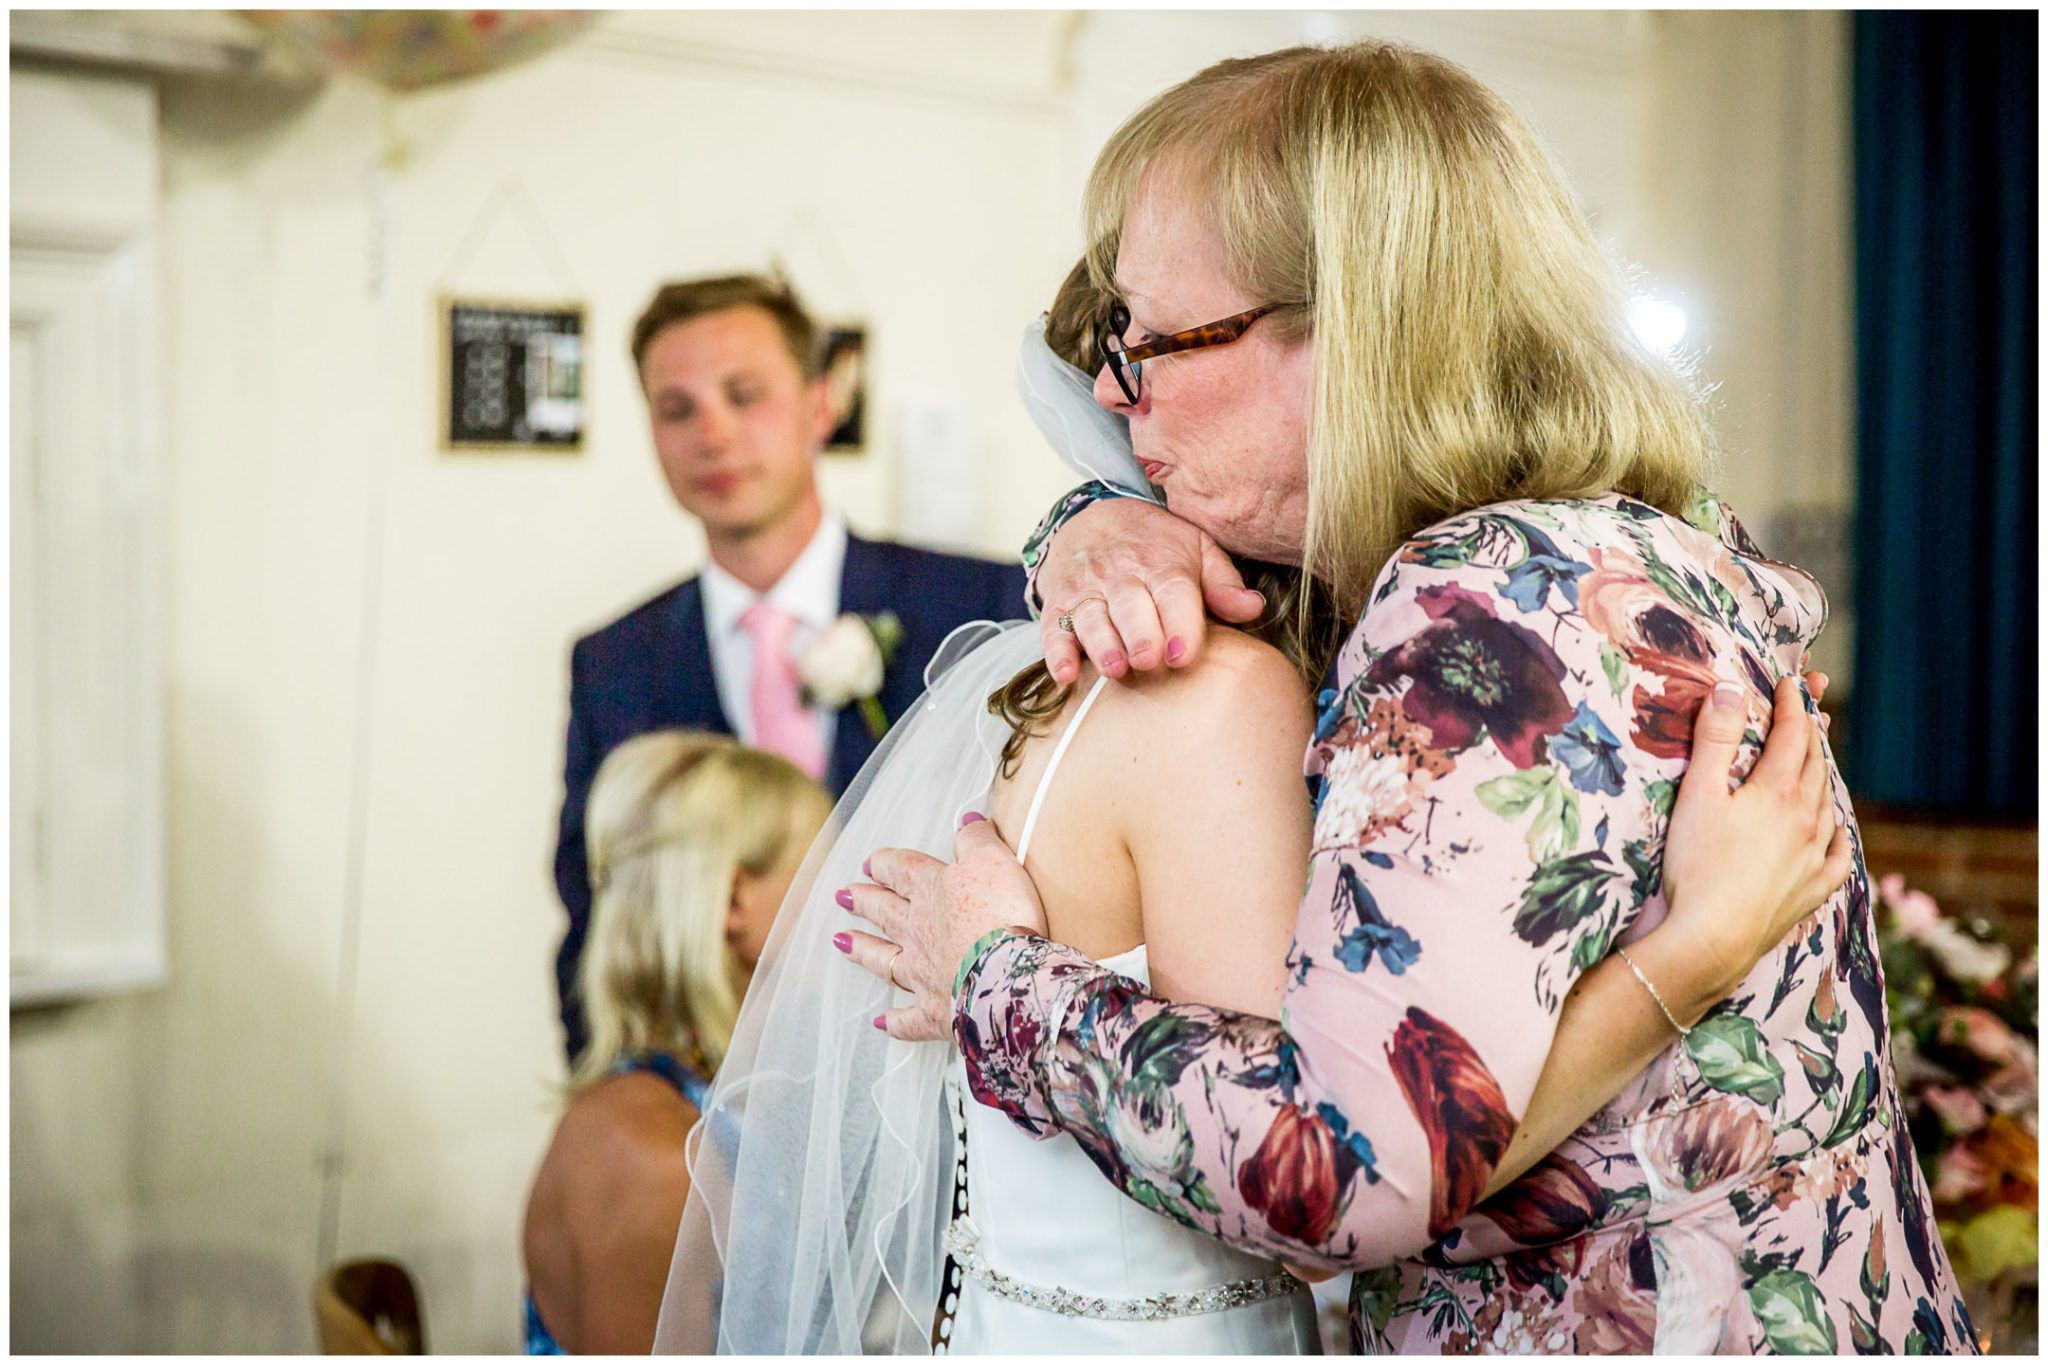 Mother of the bride hugs her daughter after giving a wedding speech